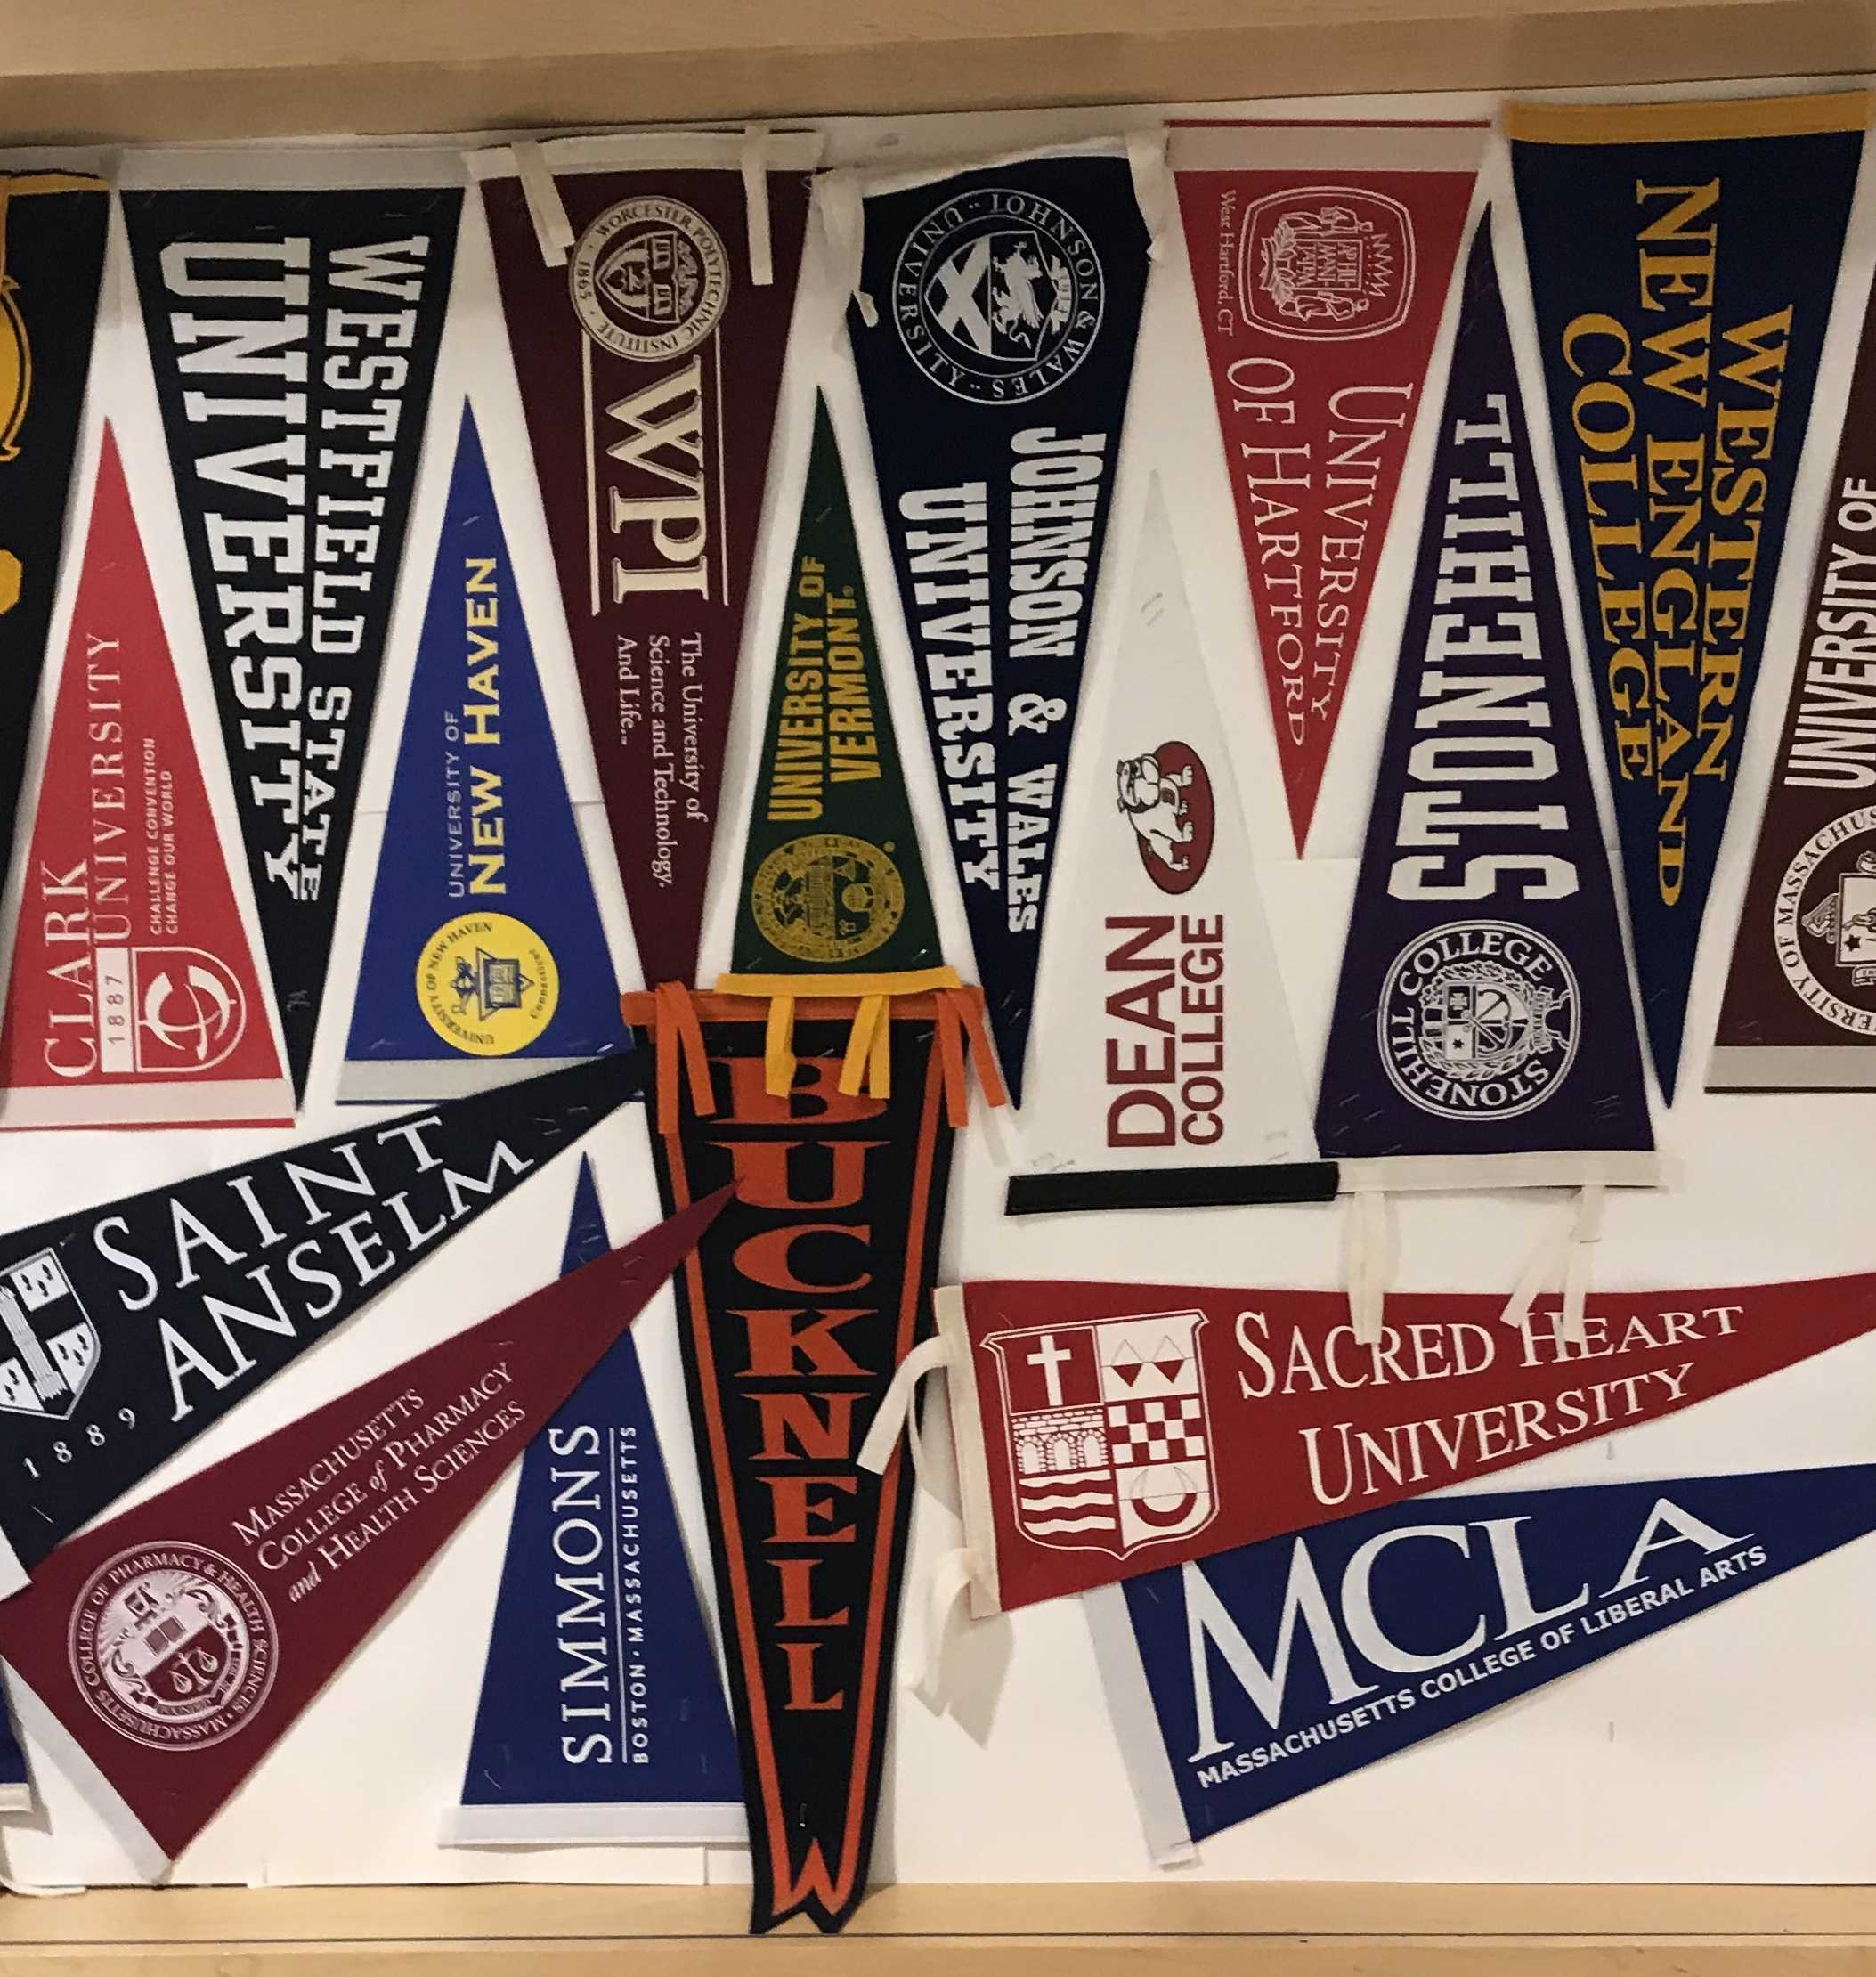 Guidance displays a variety of college options for students.